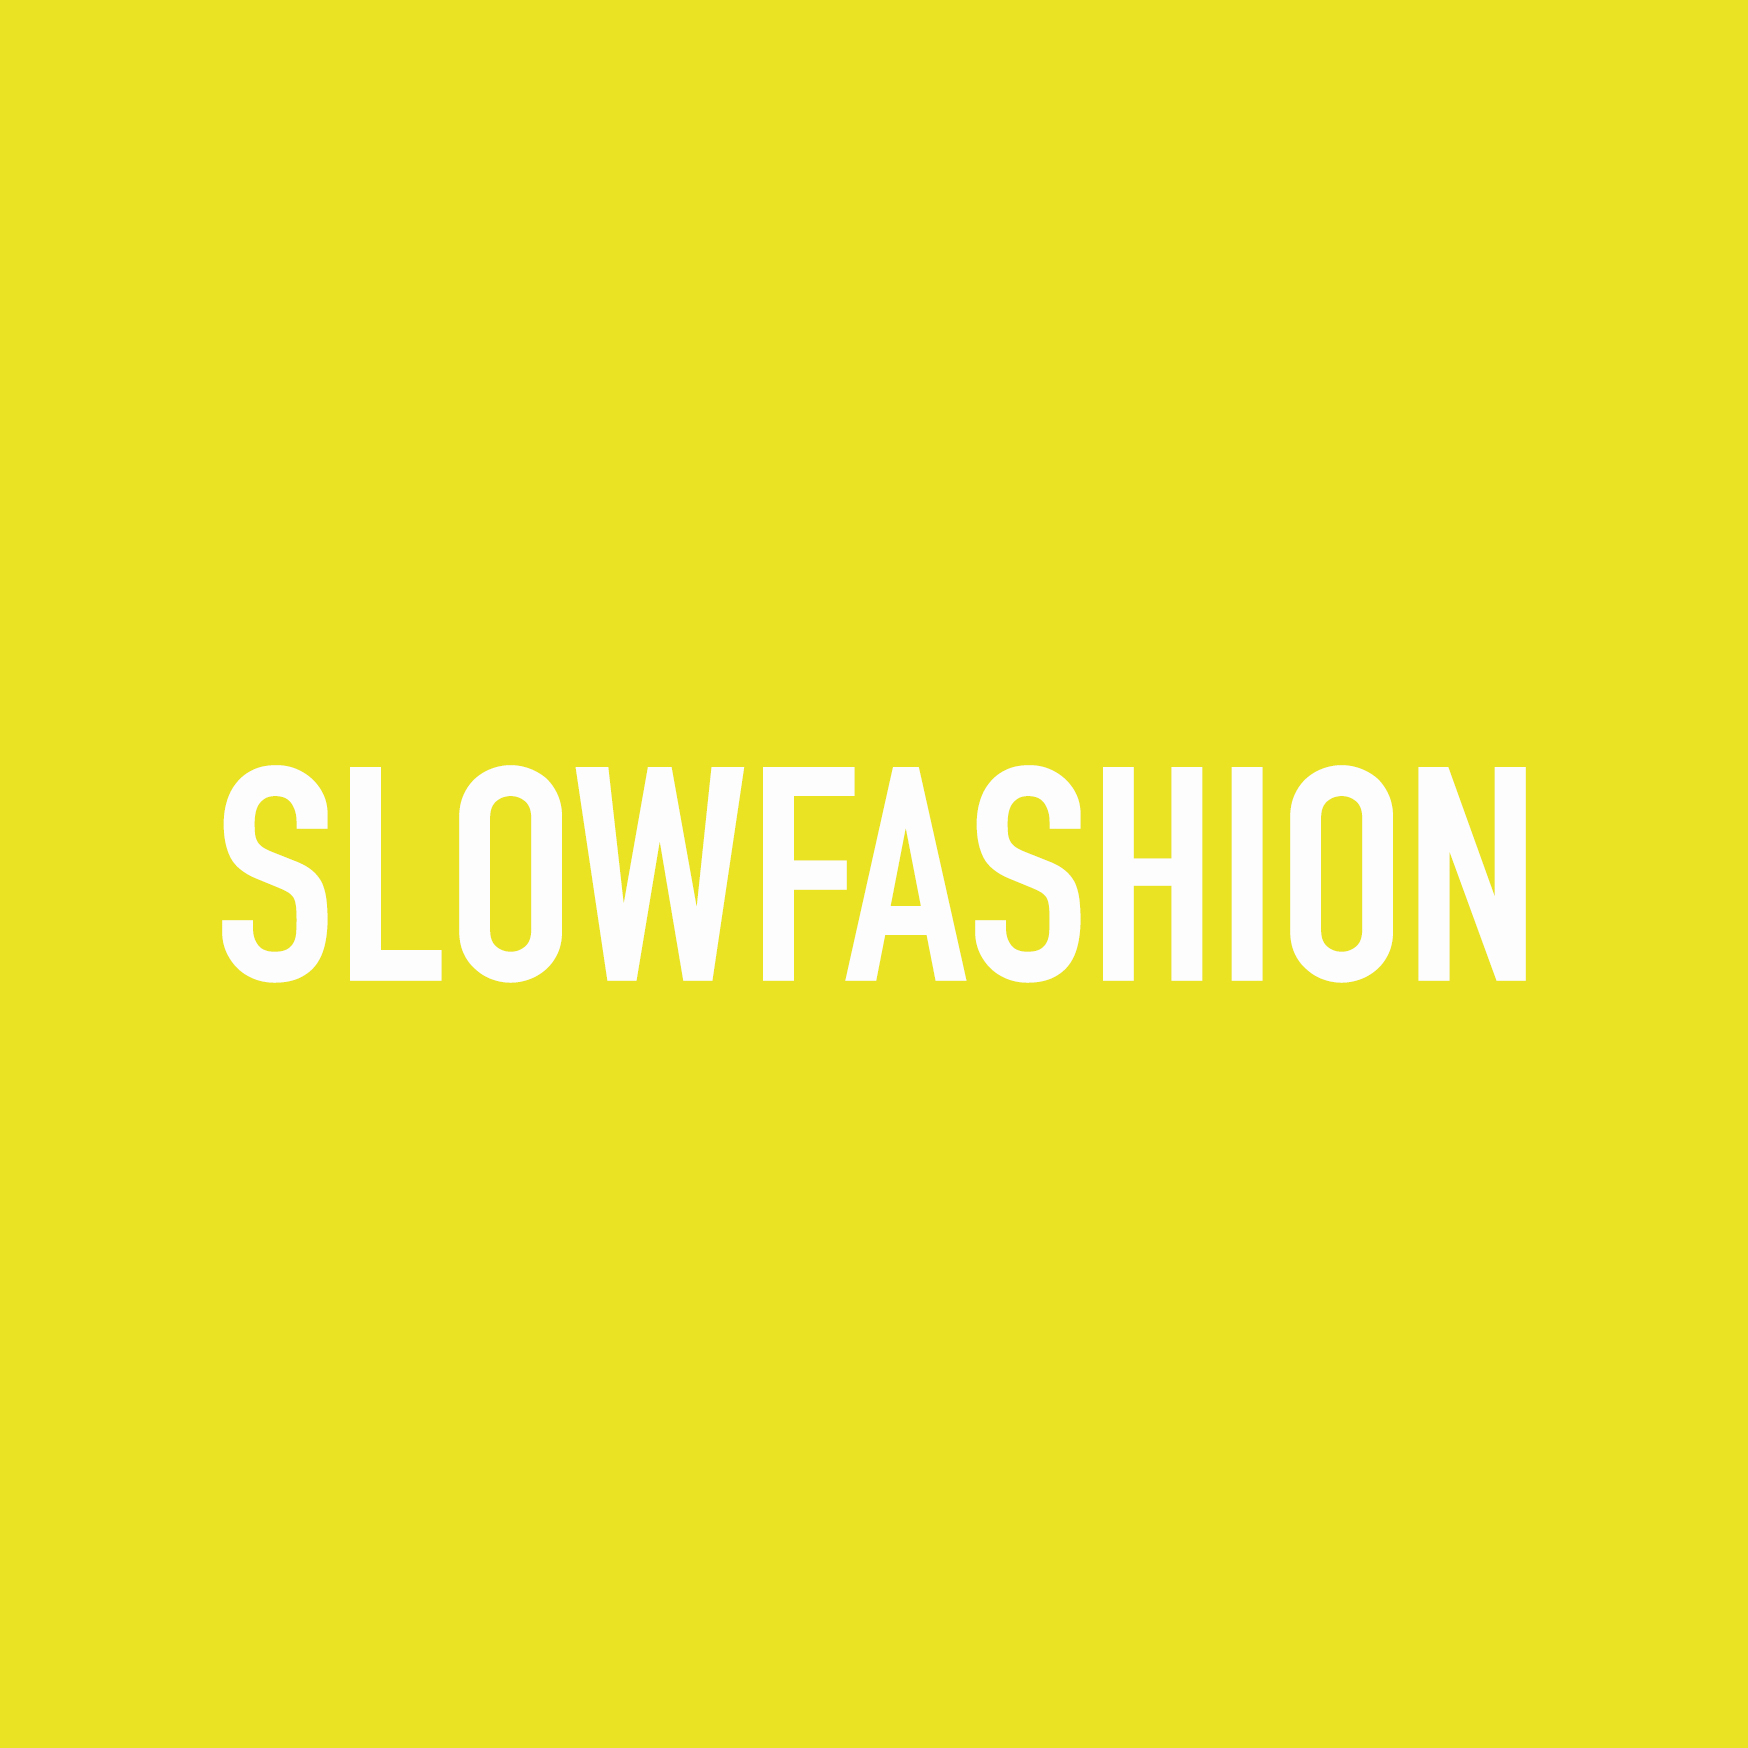 SLOWFASHION.jpg